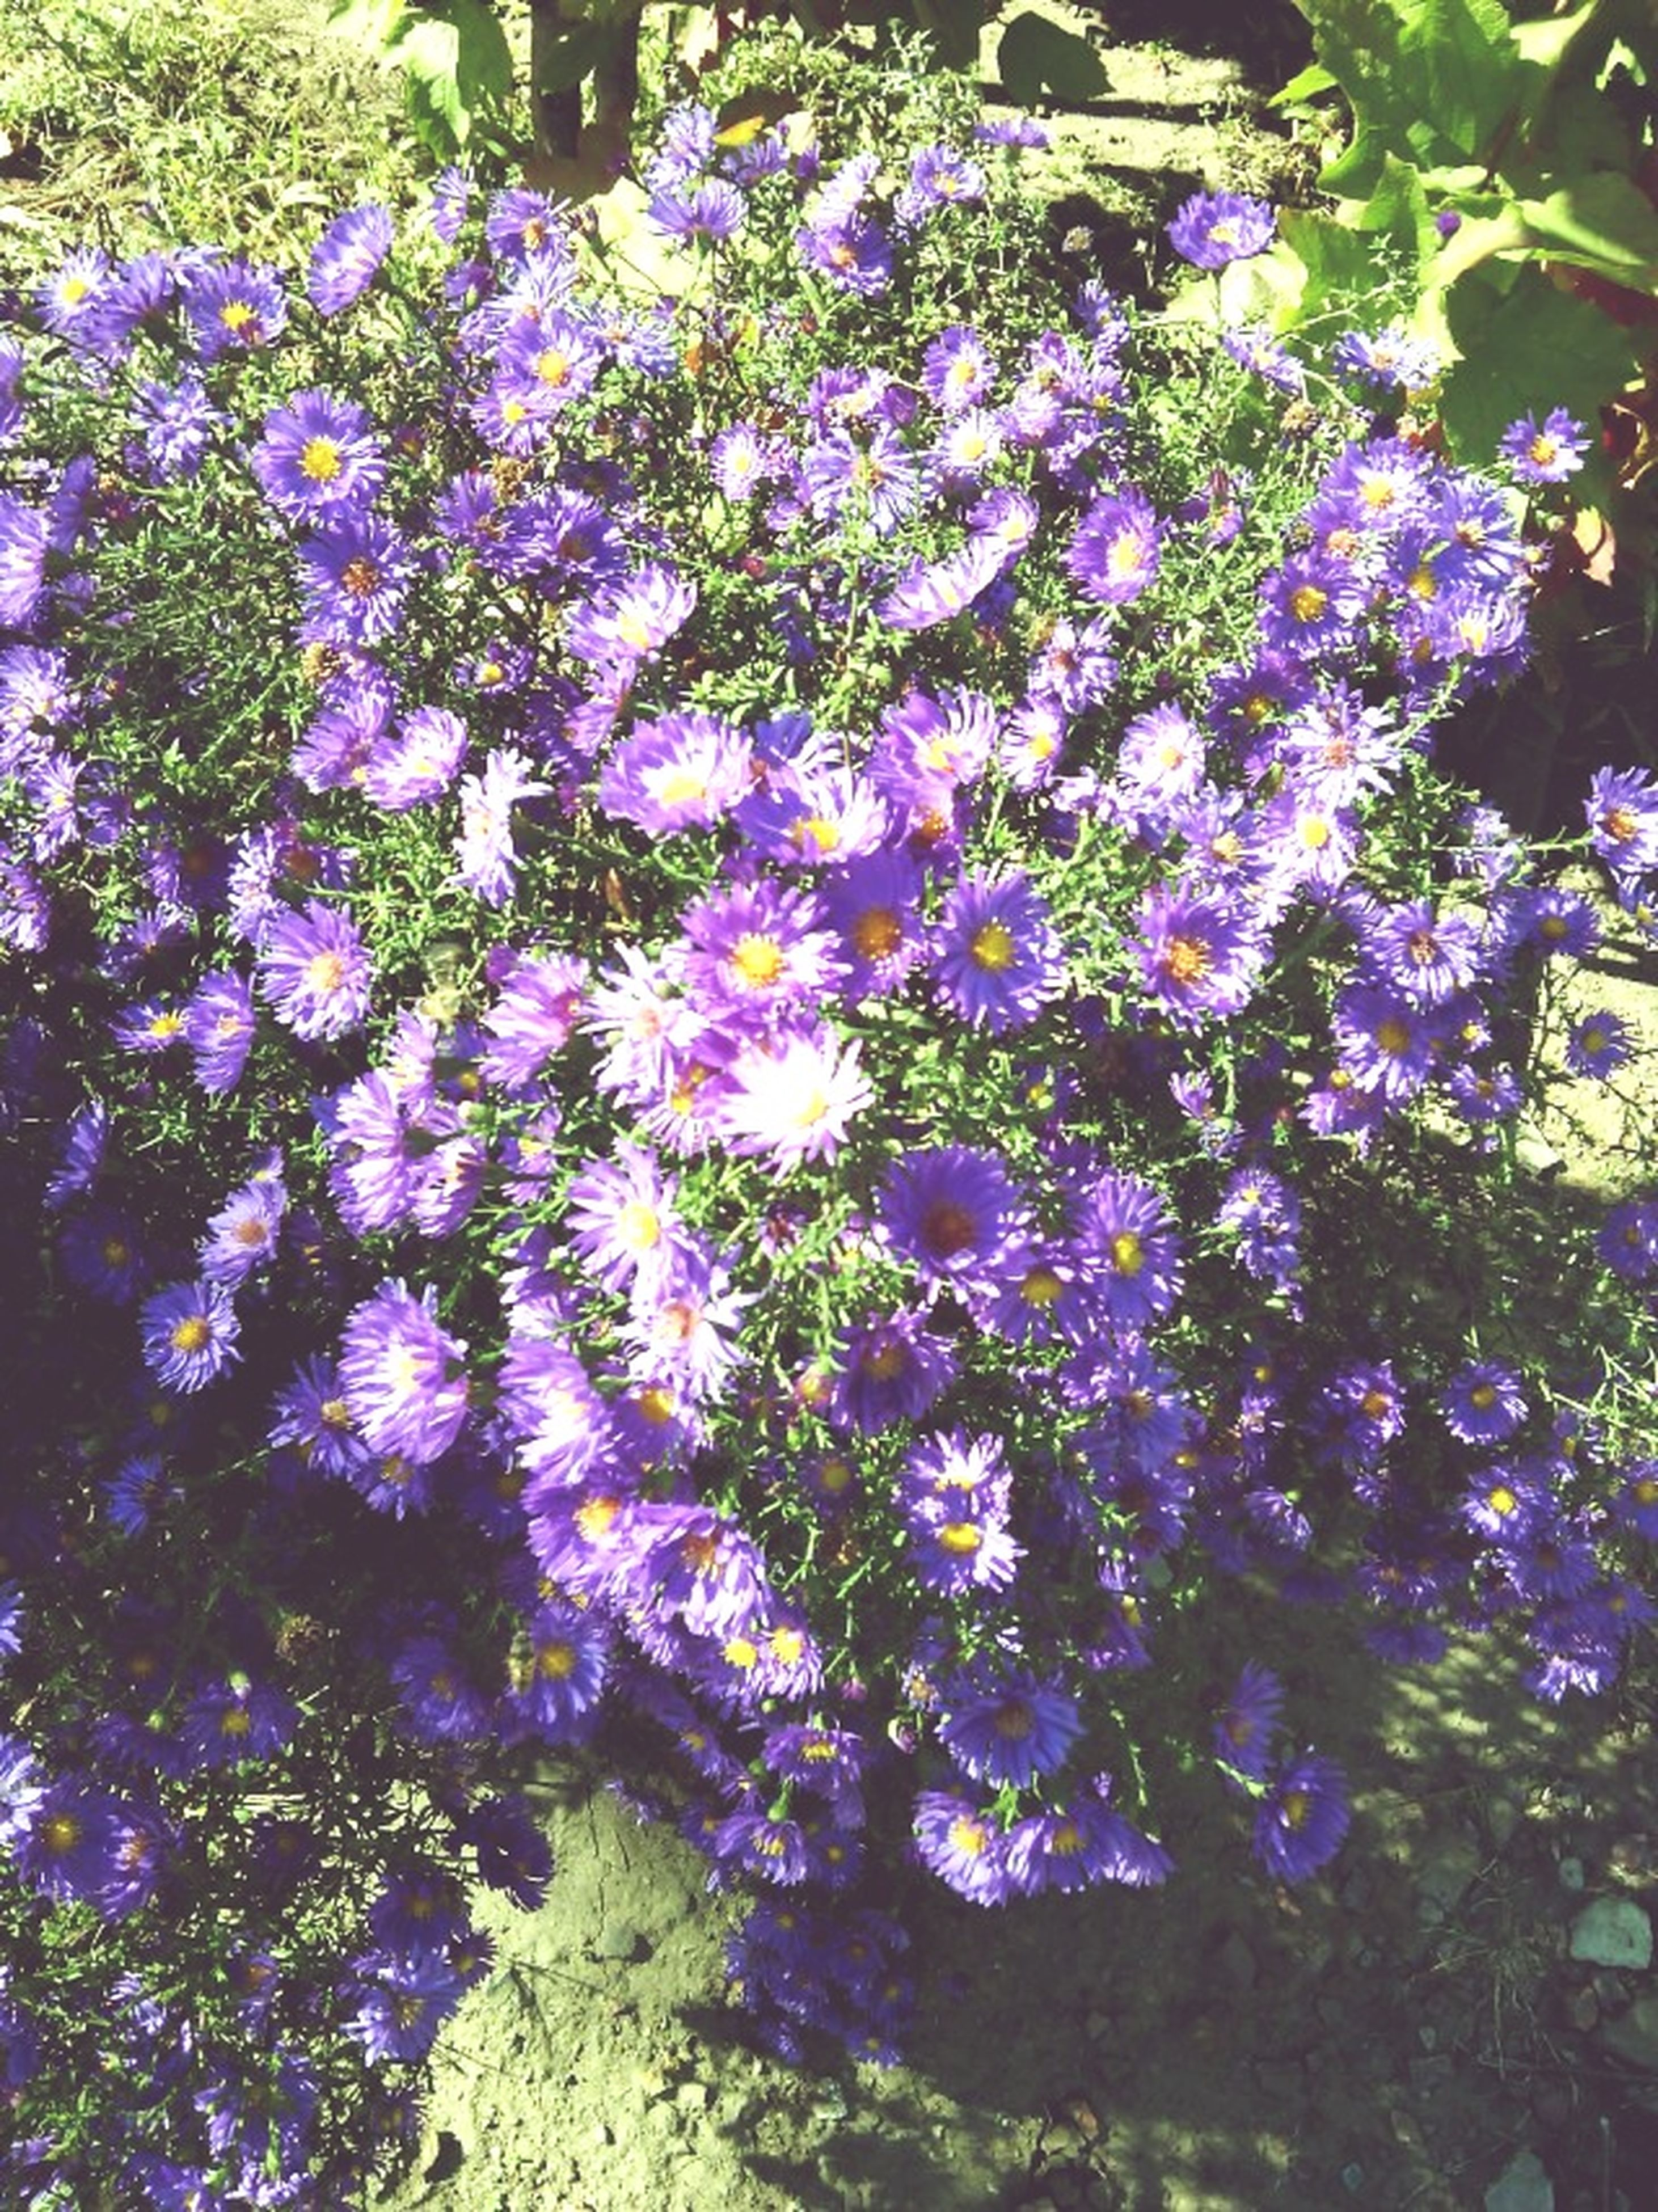 flower, growth, purple, high angle view, plant, freshness, beauty in nature, fragility, nature, abundance, petal, blooming, field, park - man made space, outdoors, day, no people, leaf, sunlight, in bloom